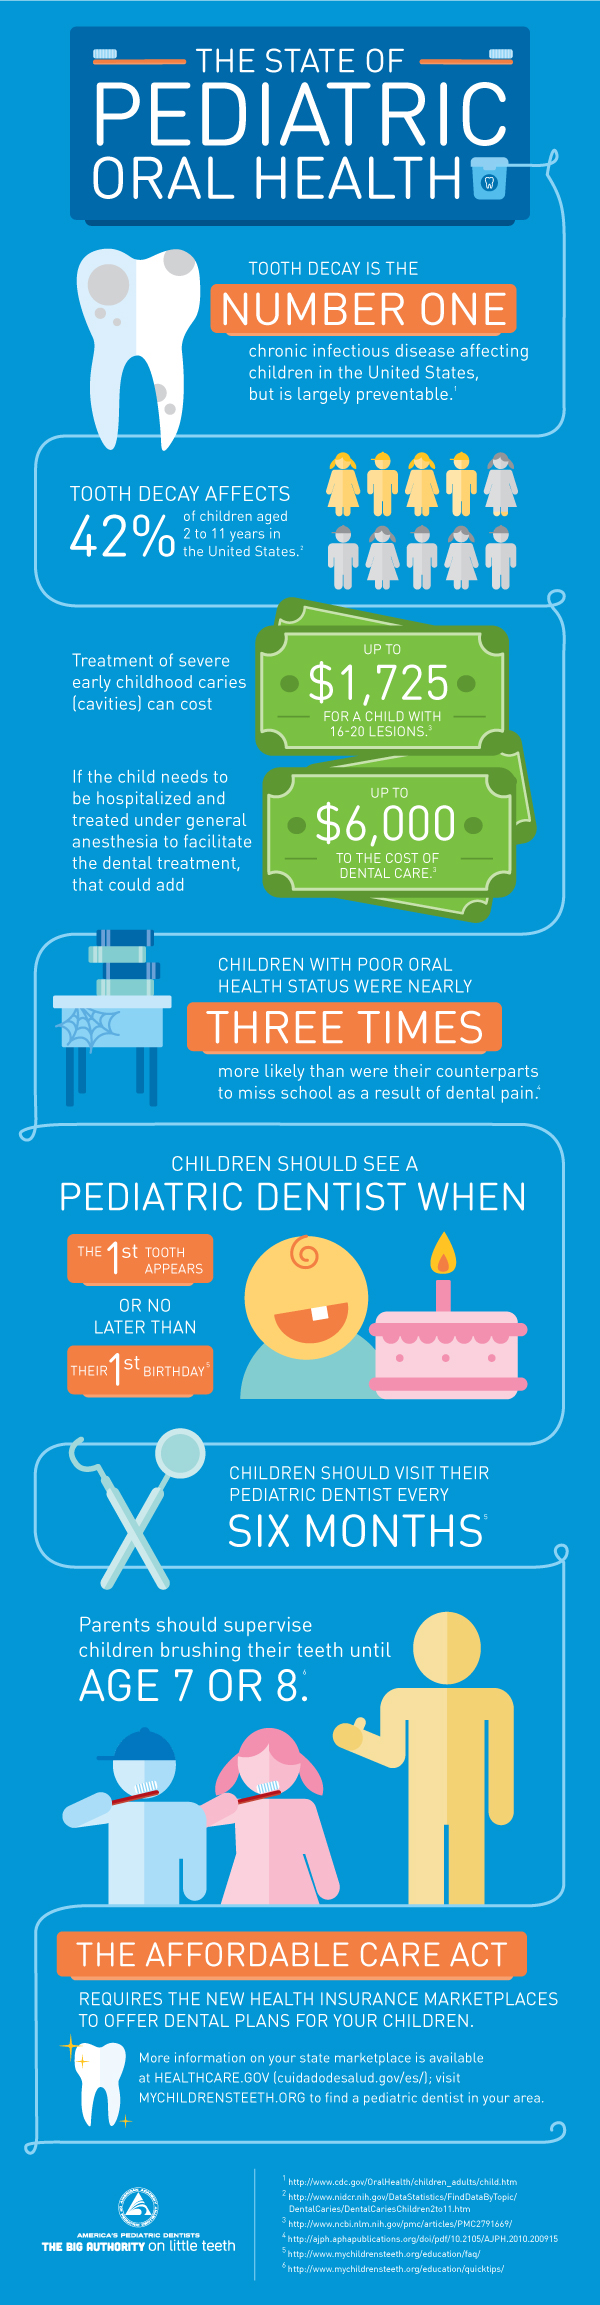 Pediatric-Dental-Care-Infographic.jpg